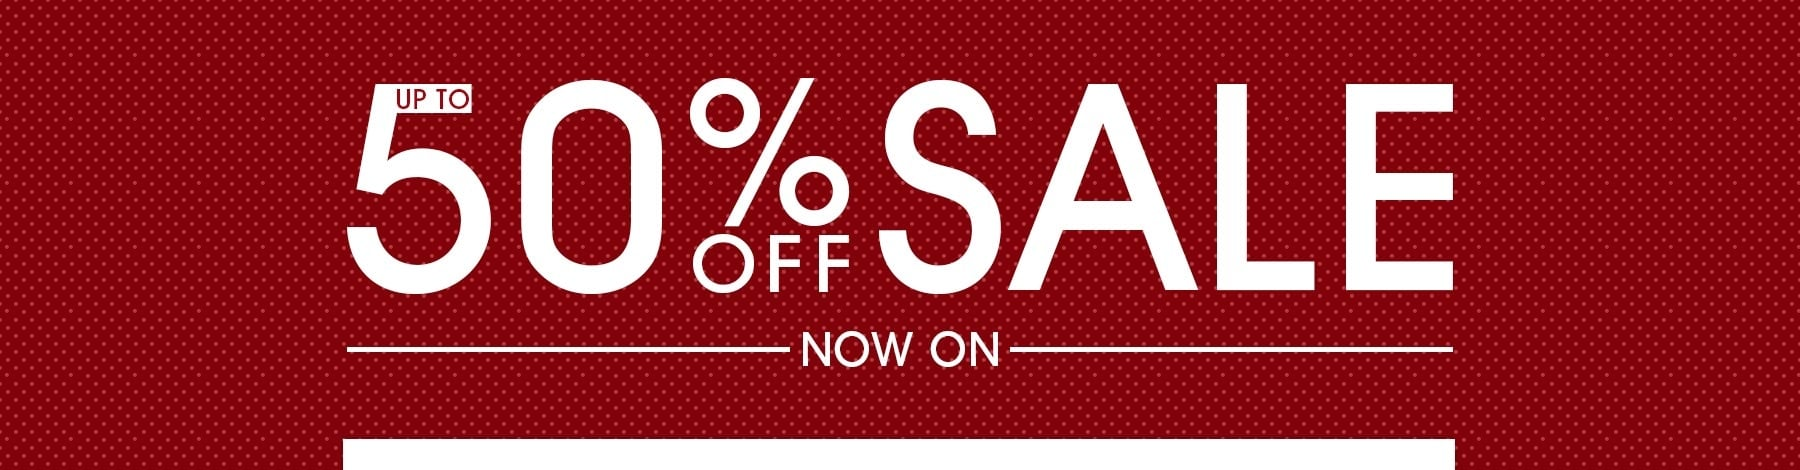 Up To 50% Off Sale Now On